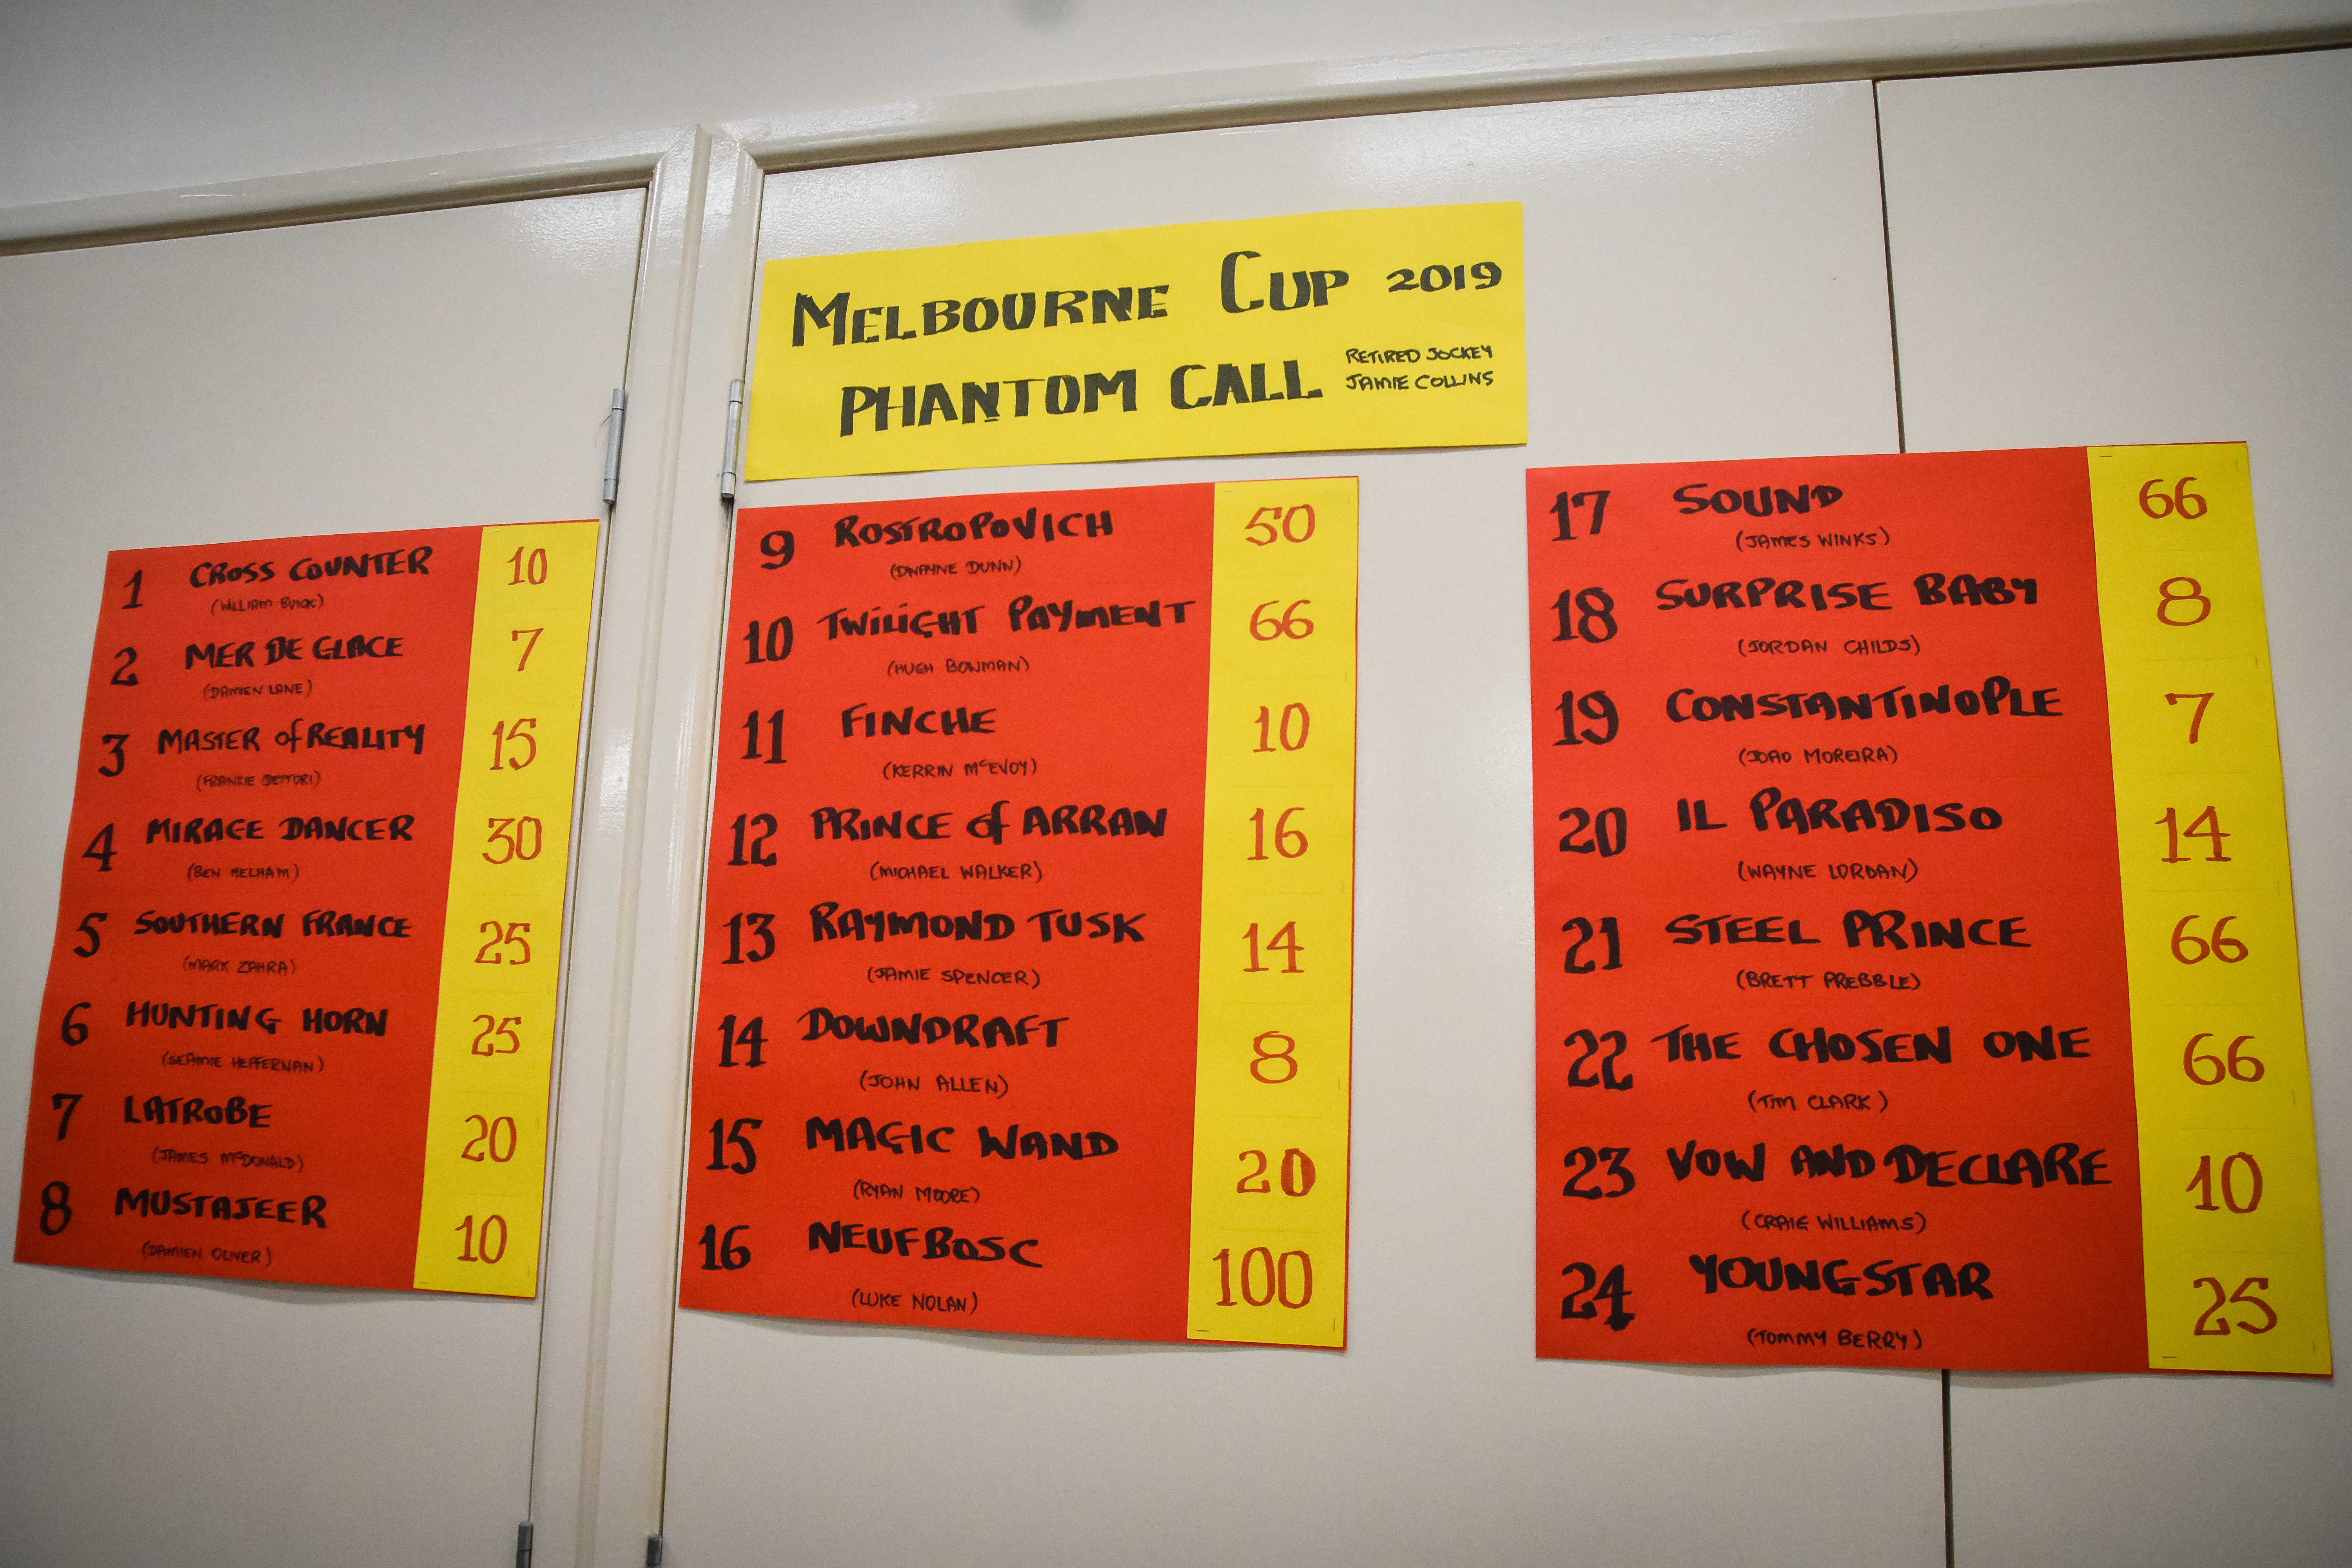 Melbourne Cup Dinner for the Dignity Project